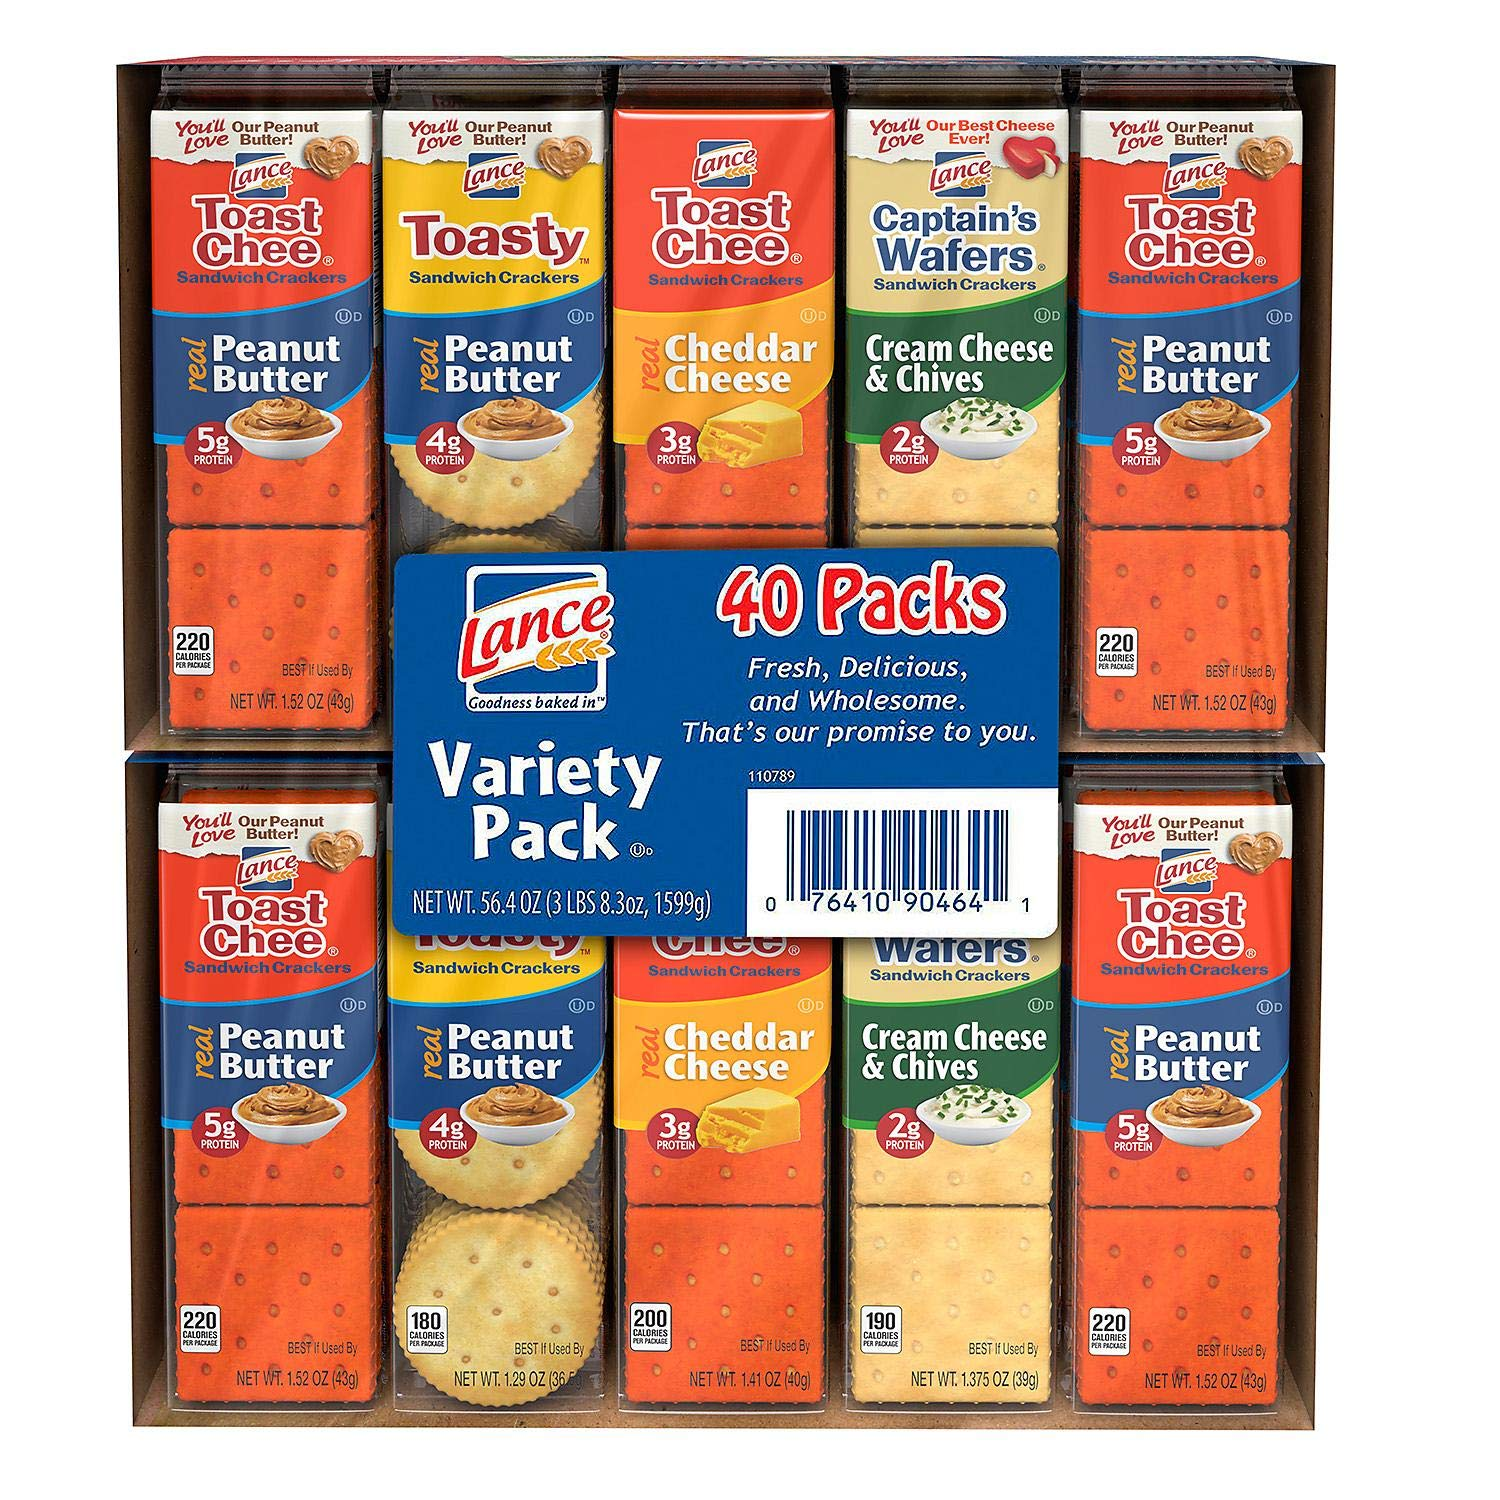 Lance Sandwich Crackers, Variety Pack 1.41 oz, 40 ct. A1 by Store - 383